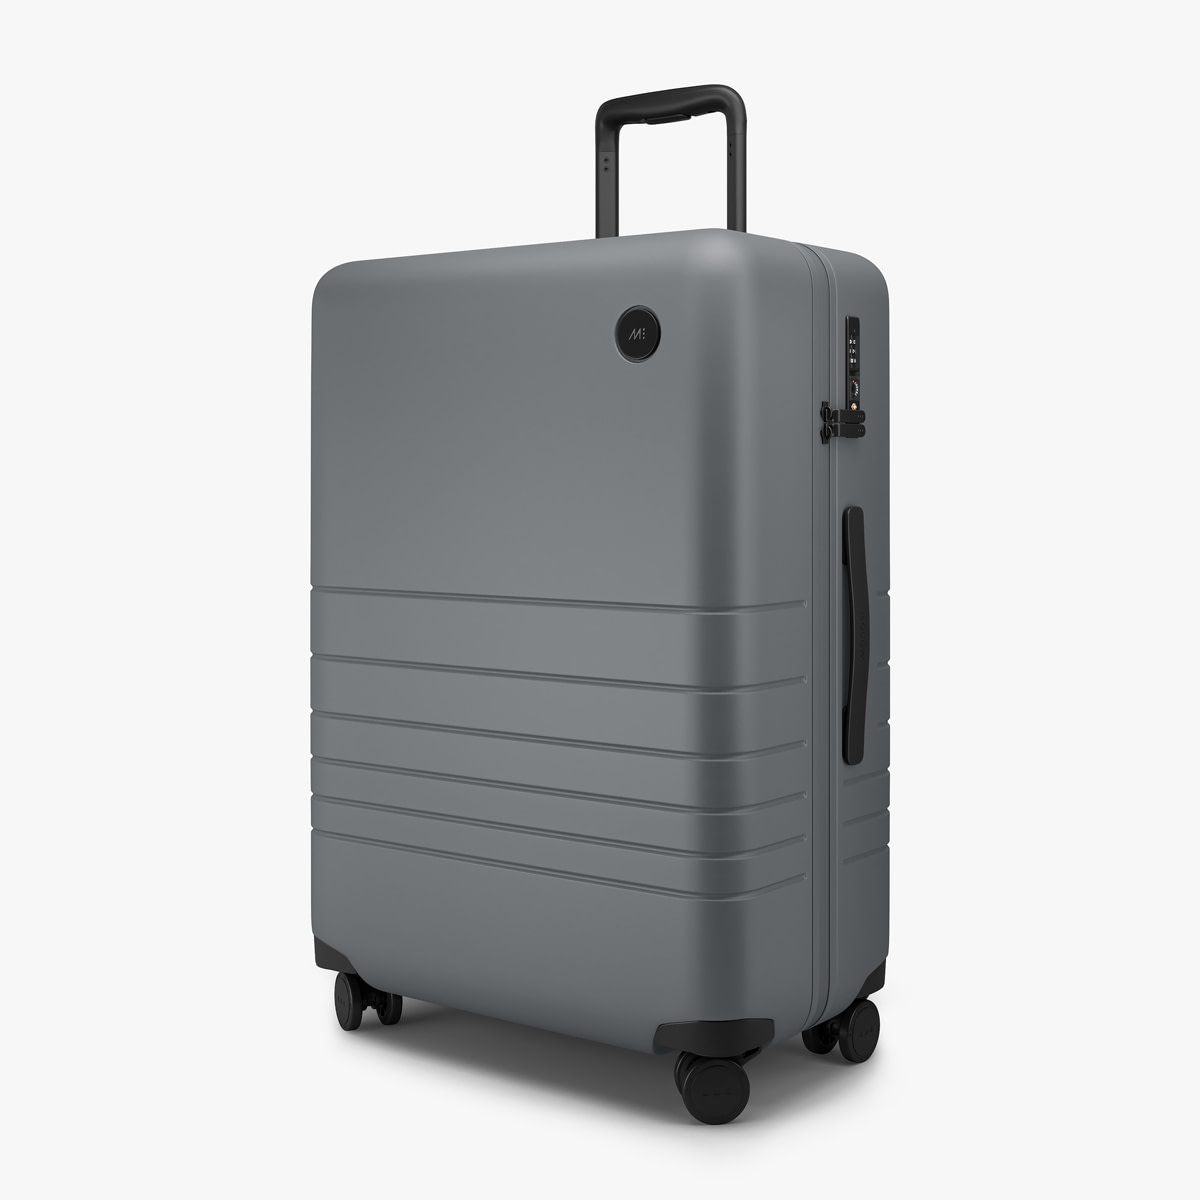 Best Checked Luggage for International Travel